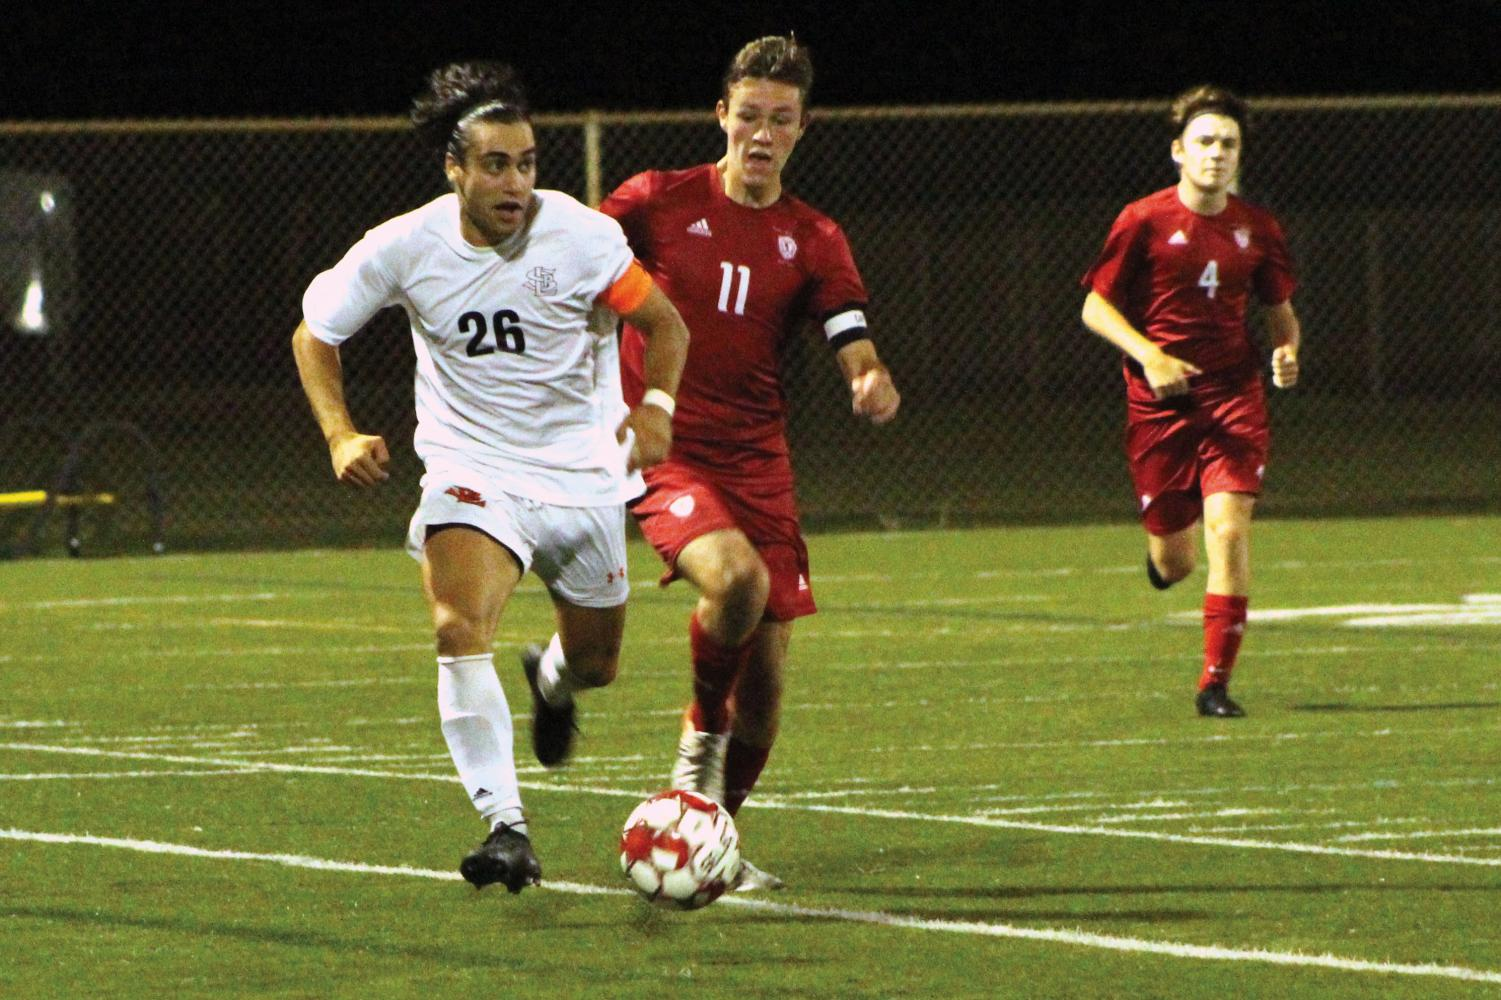 Senior Thomas Salamzadeh advances down the field, looking to pass to his teammates. Park tied 0-0 in overtime against Benilde-St. Margaret's Sept. 24